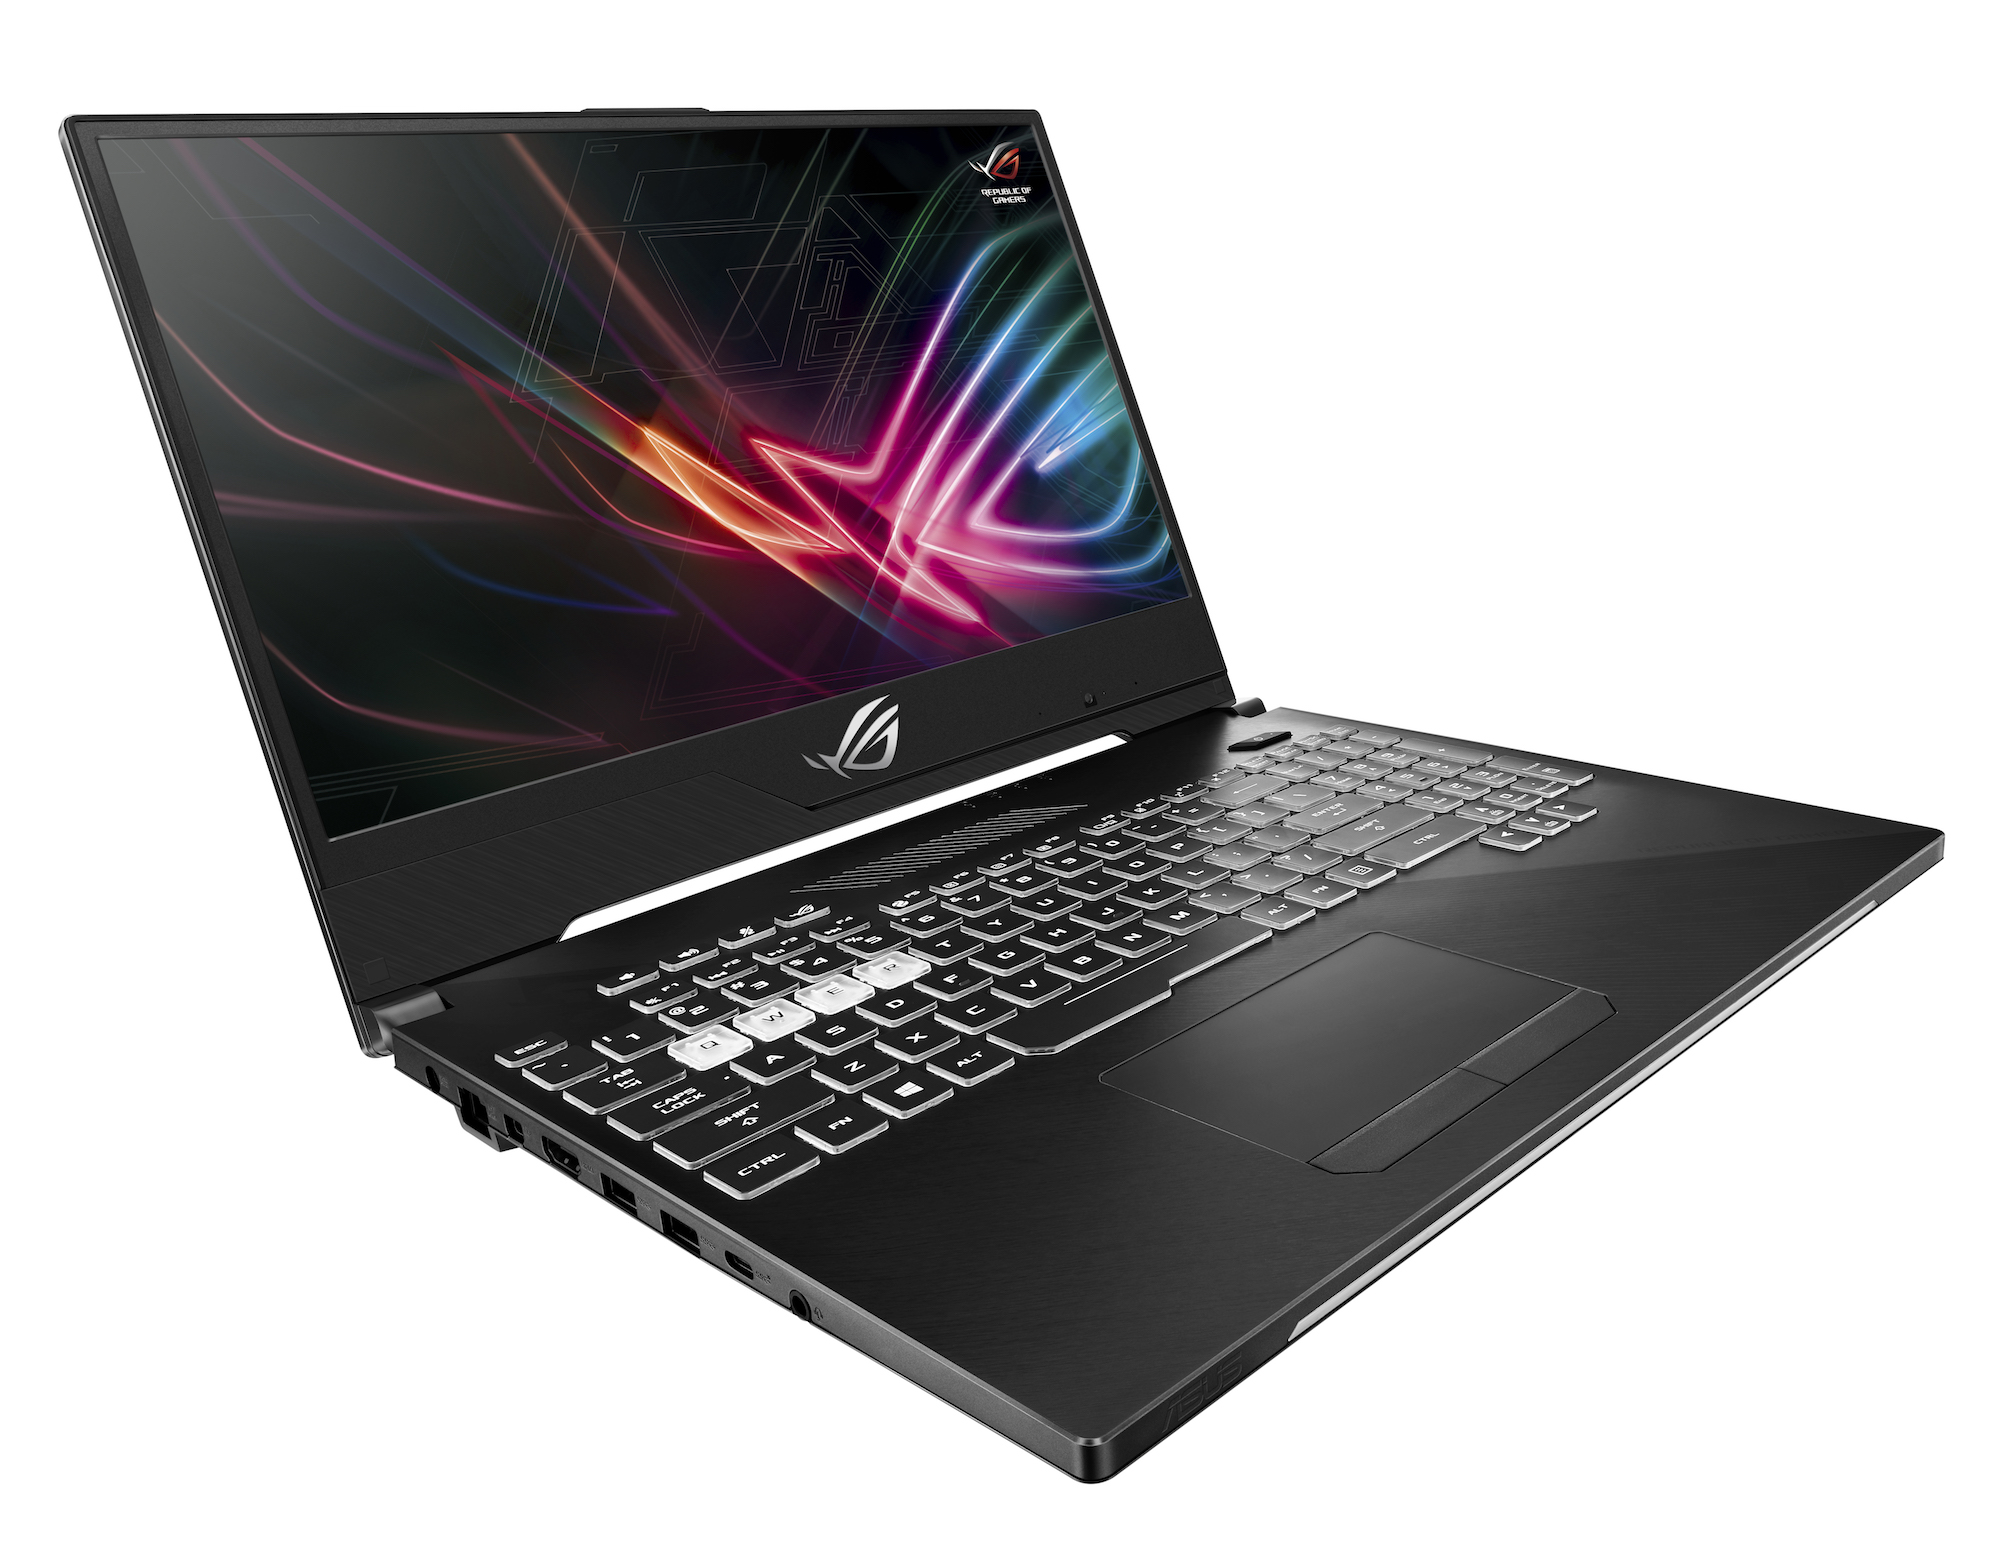 Pc Circuit Card Not Lossing Wiring Diagram Computer Keyboard Asus New Rog Gaming Laptops Have Moba And Fps Sound Pci